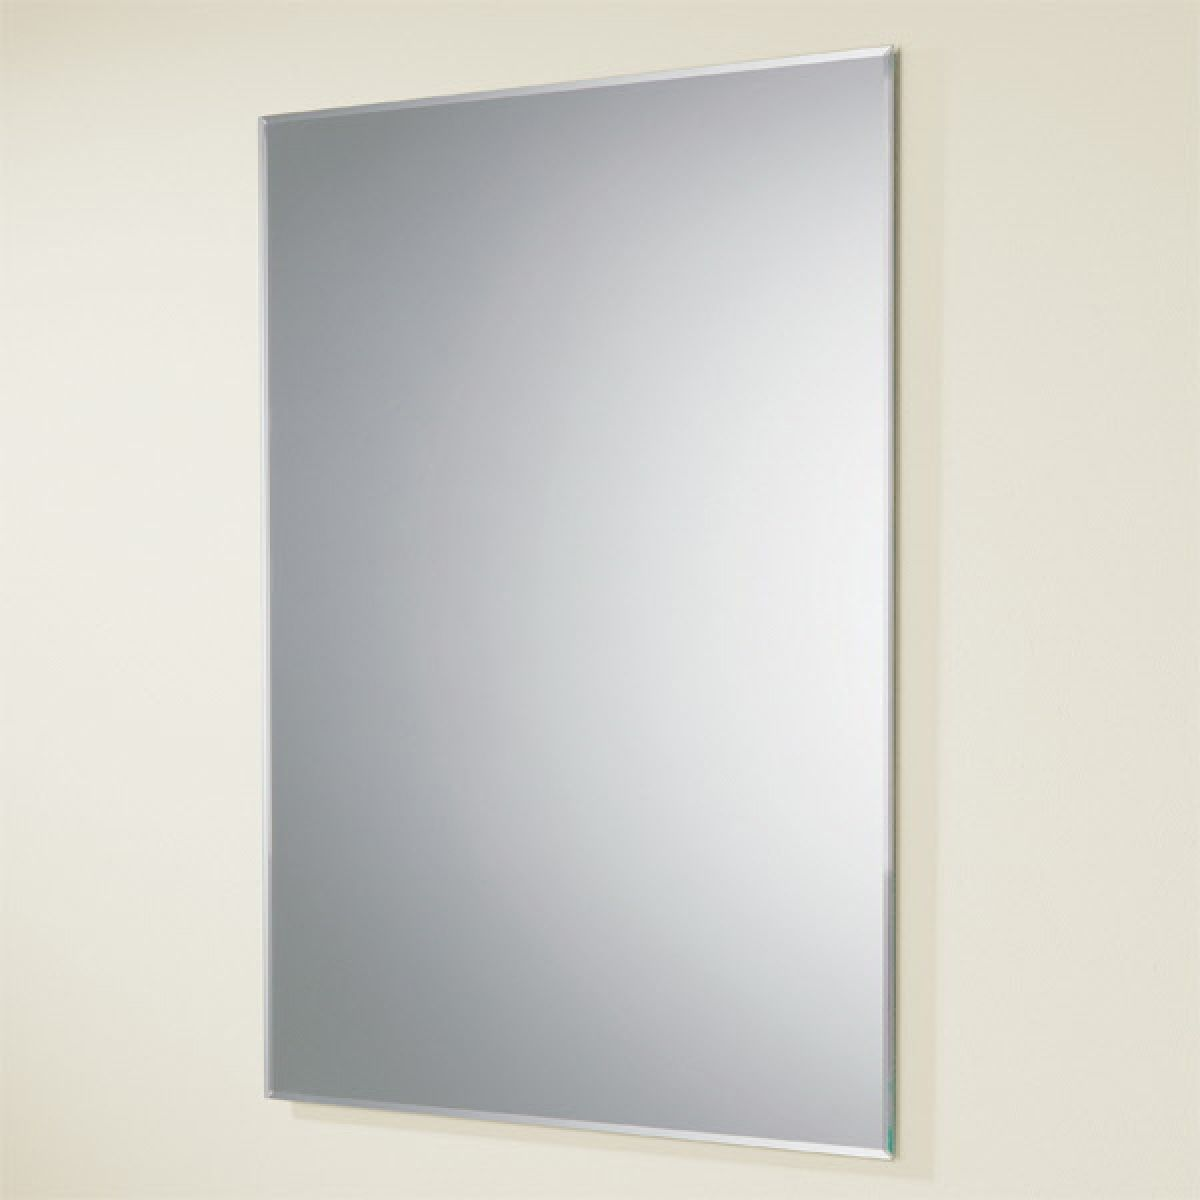 HiB Joshua Heated Bathroom Mirror